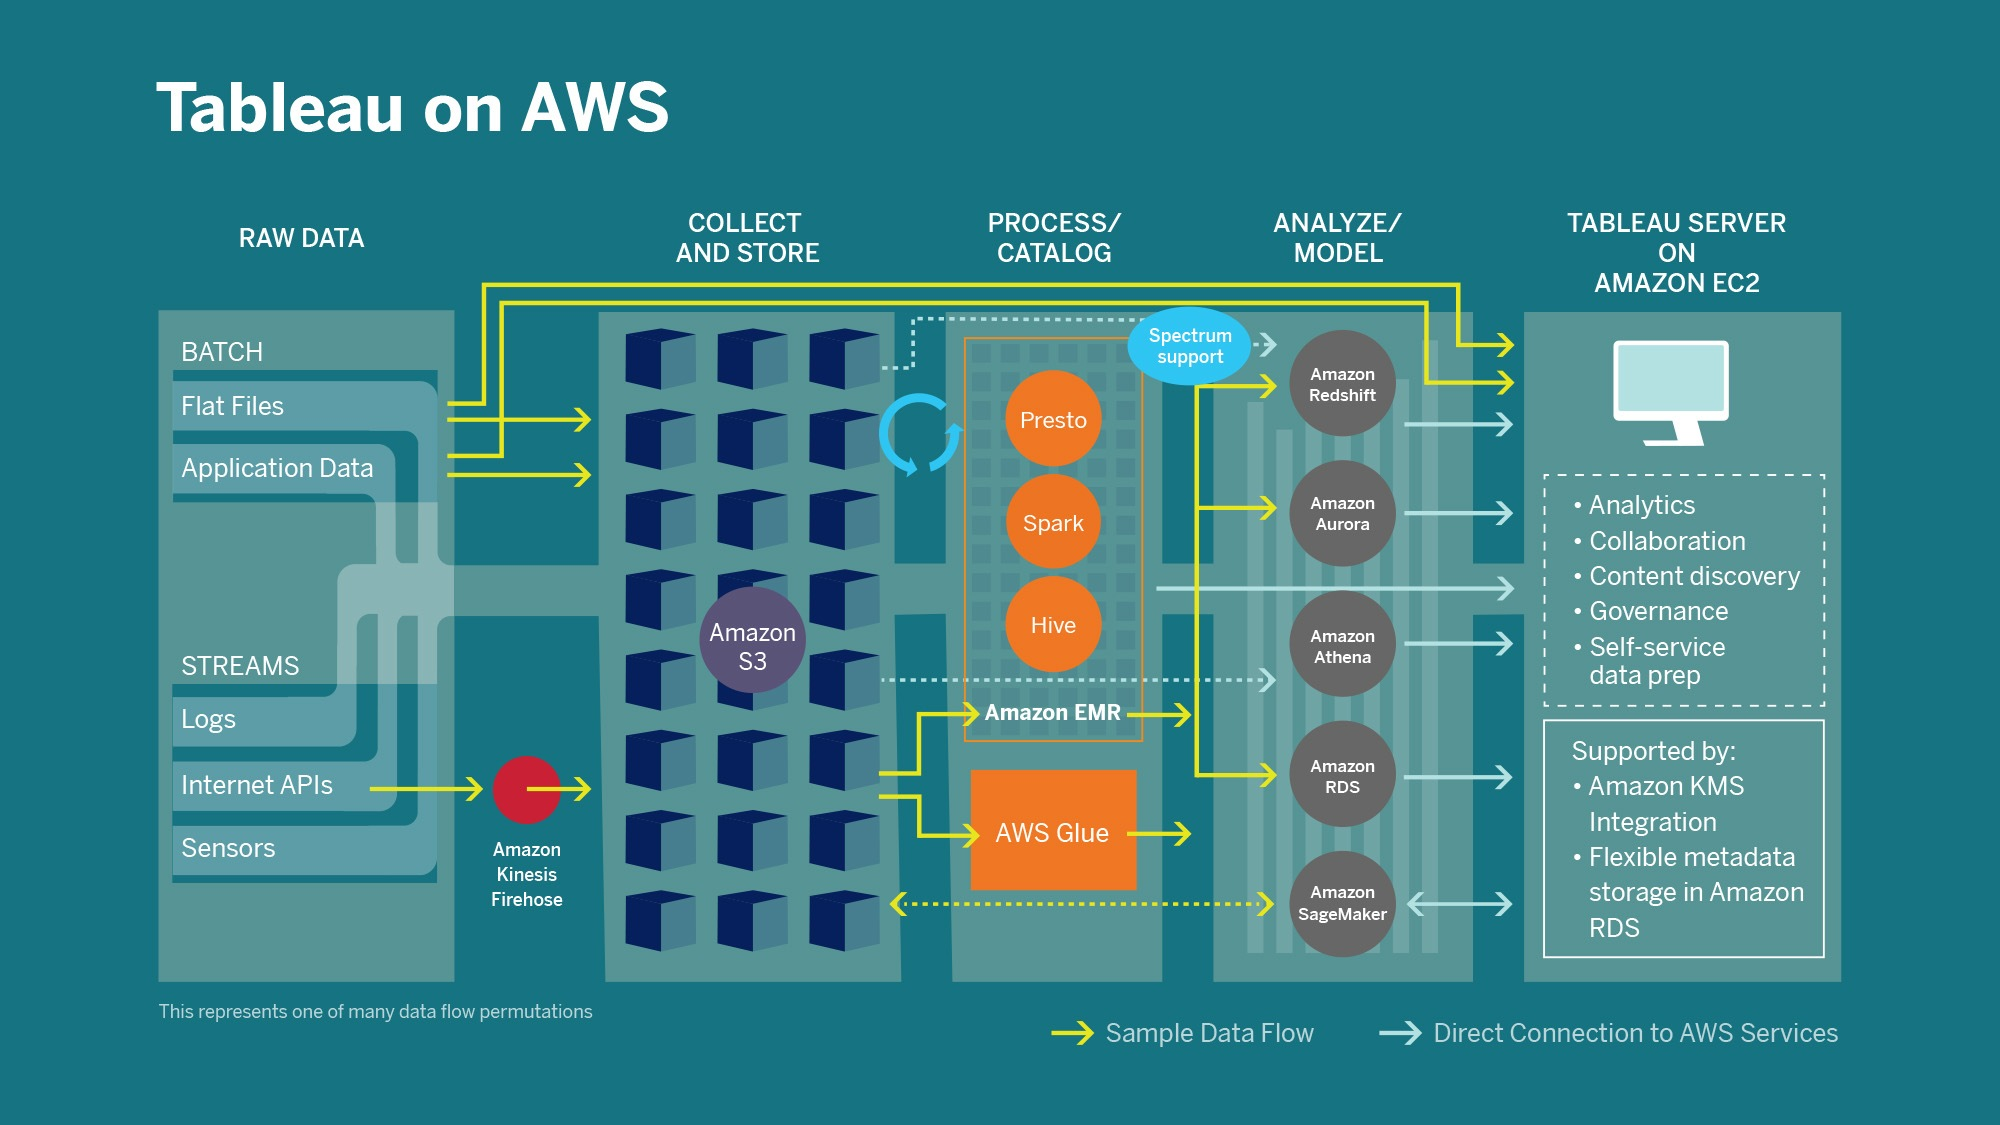 A diagram showing data flows through AWS cloud services integrated with Tableau analytics